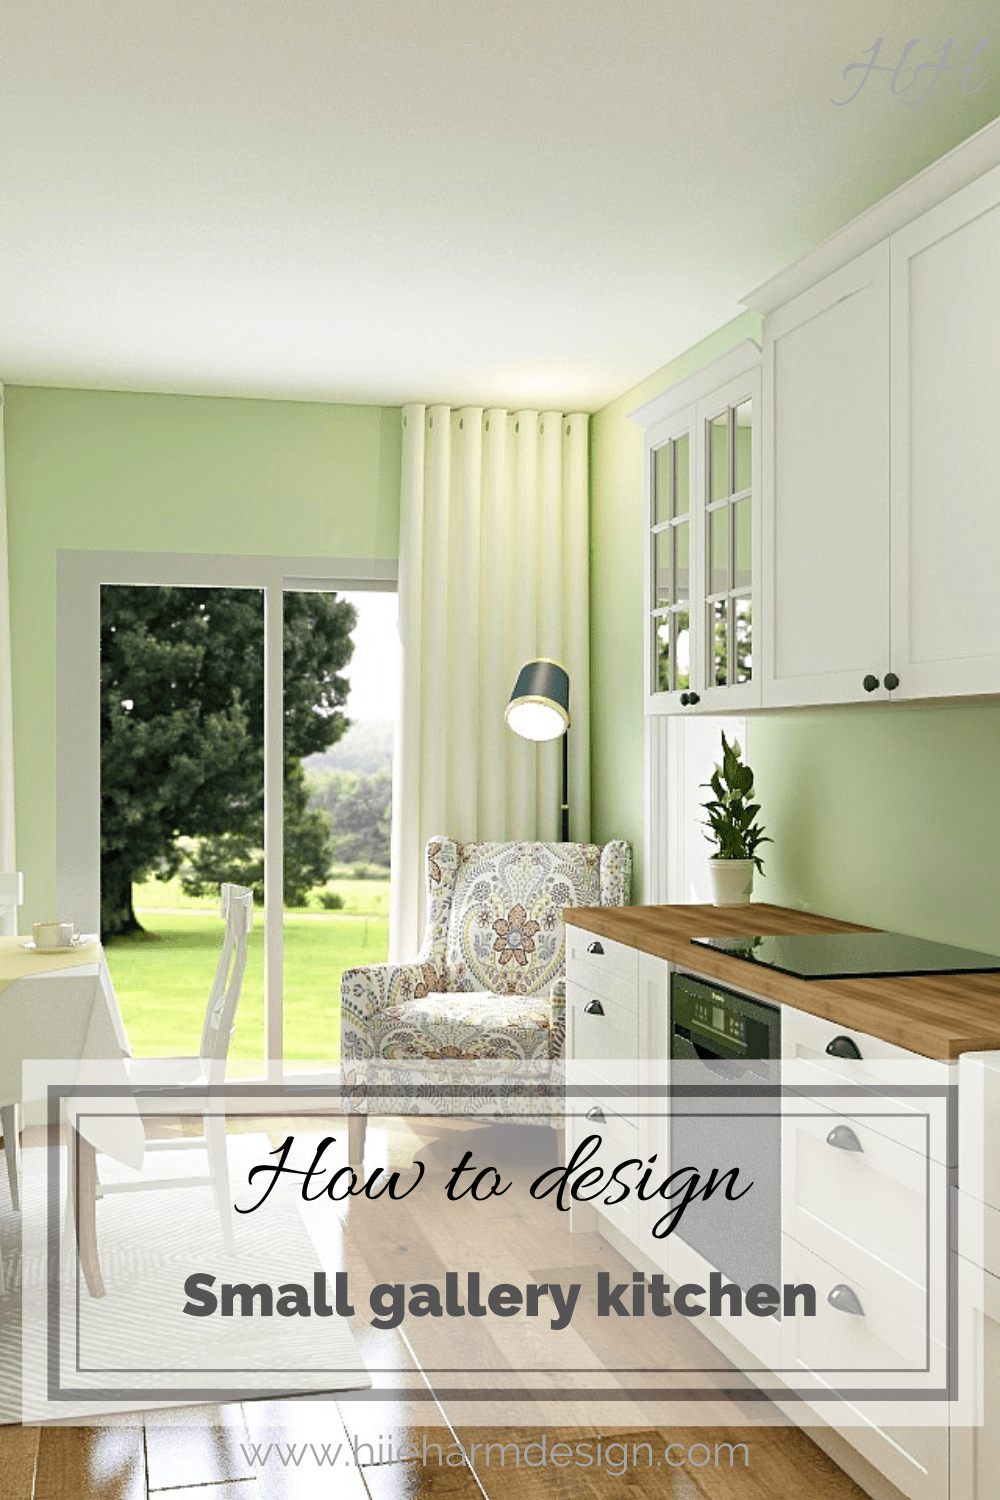 How to design small gallery kitchen 7-min